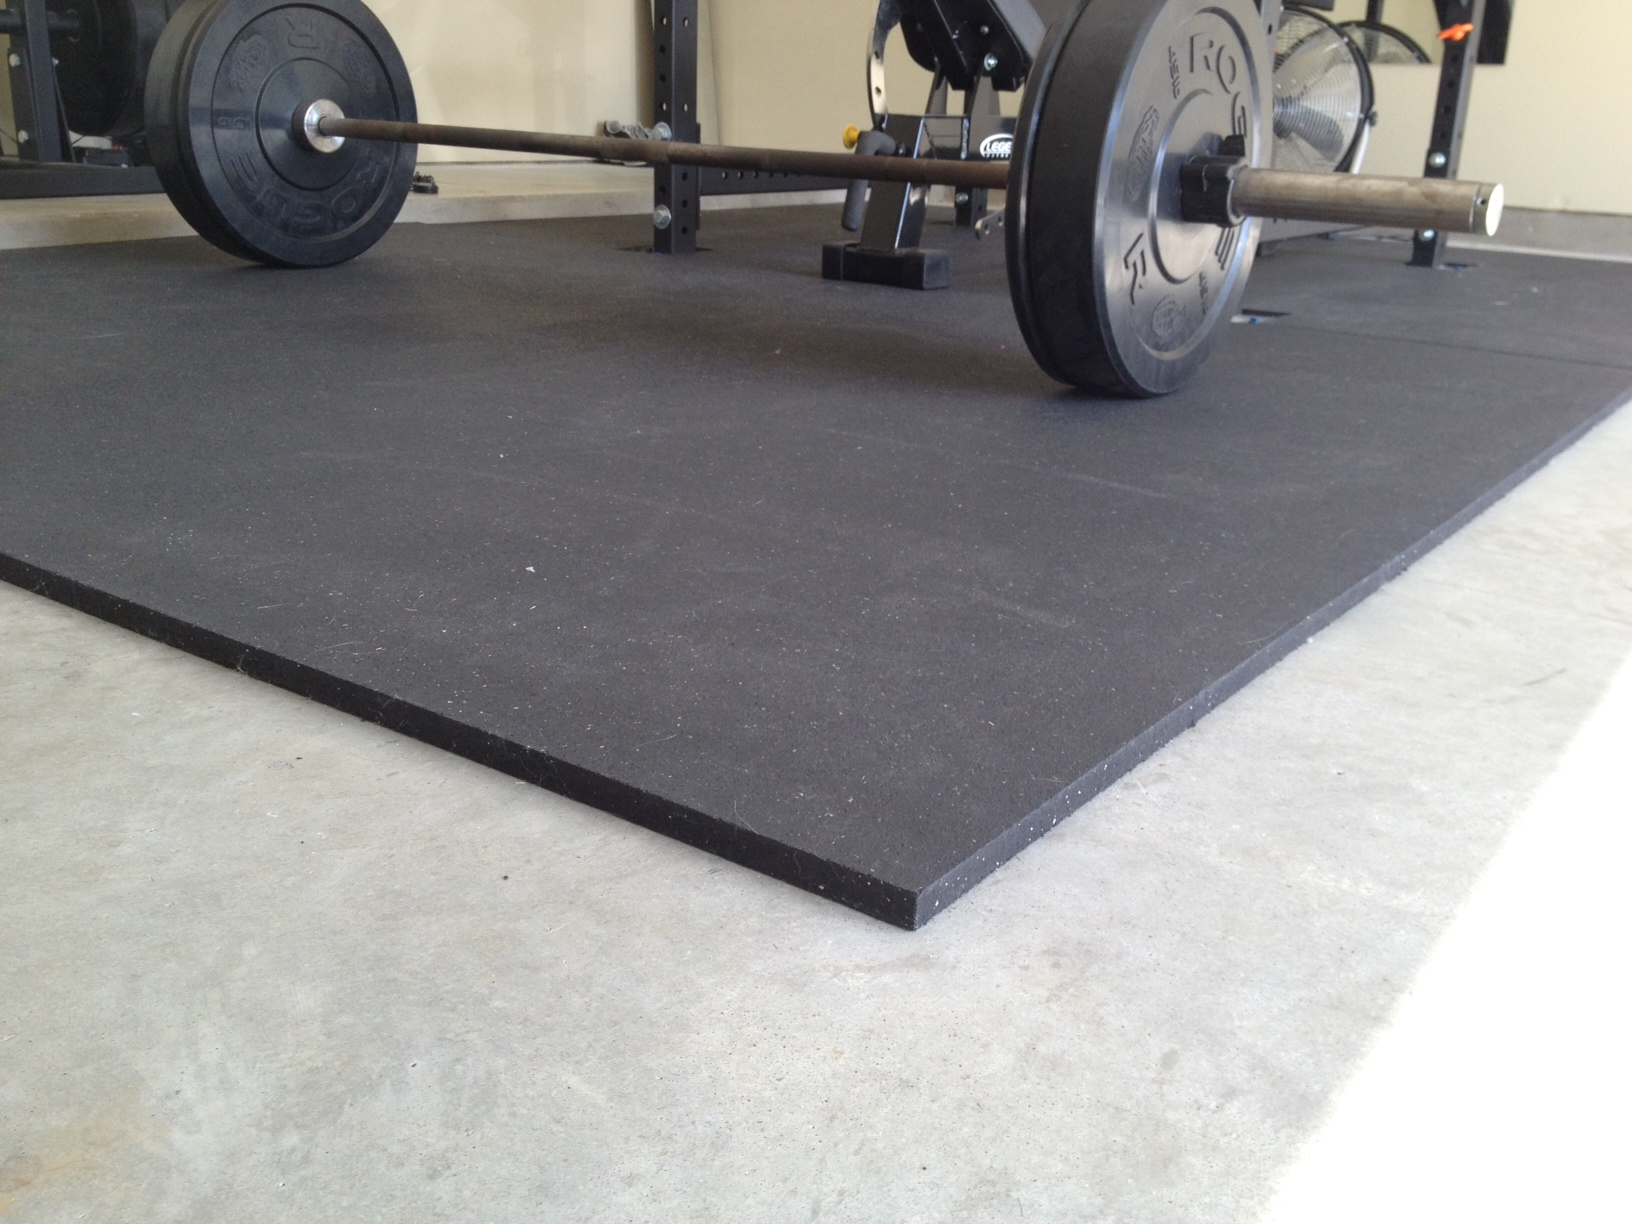 Rubber floor mats uk - Rubber Gym Mats For My Garage Gym Flooring